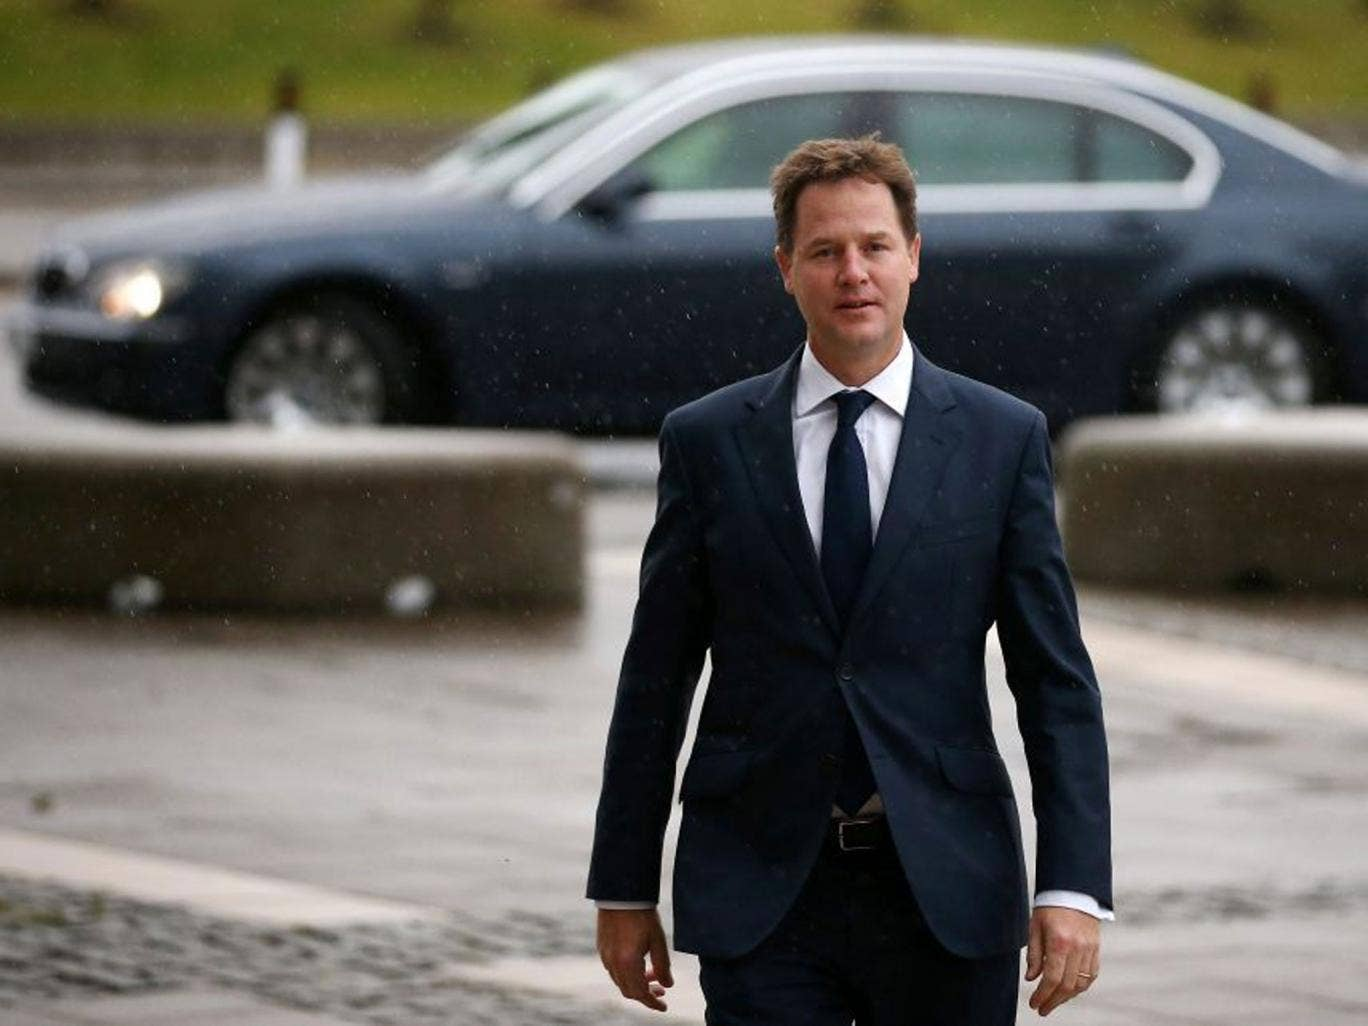 In the ledger of tiny gains and losses by which party morale is measured, it is a point for Clegg